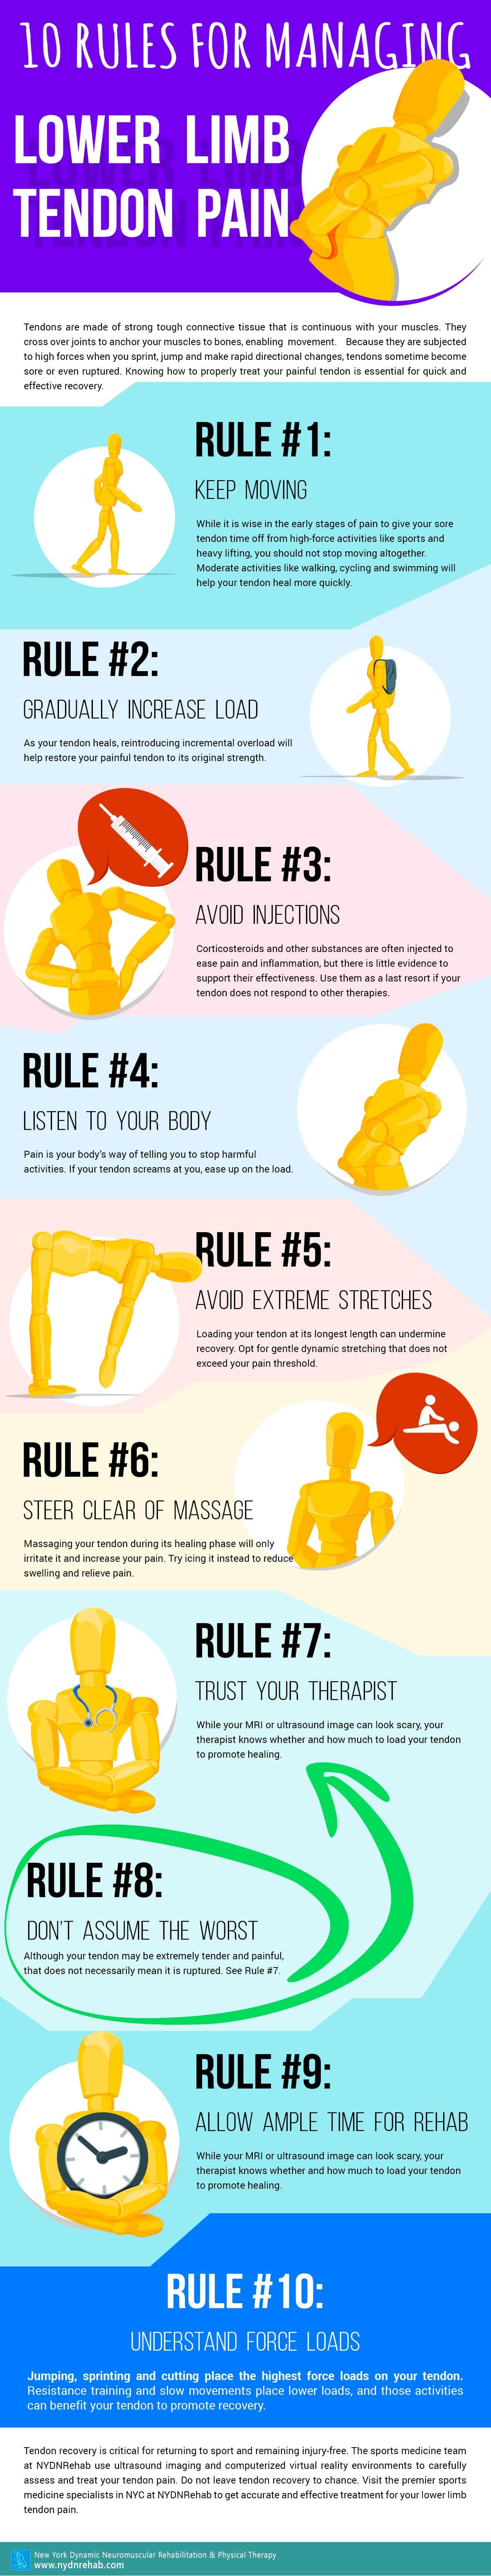 10 Rules for Managing Lower Limb Tendon Pain Blog